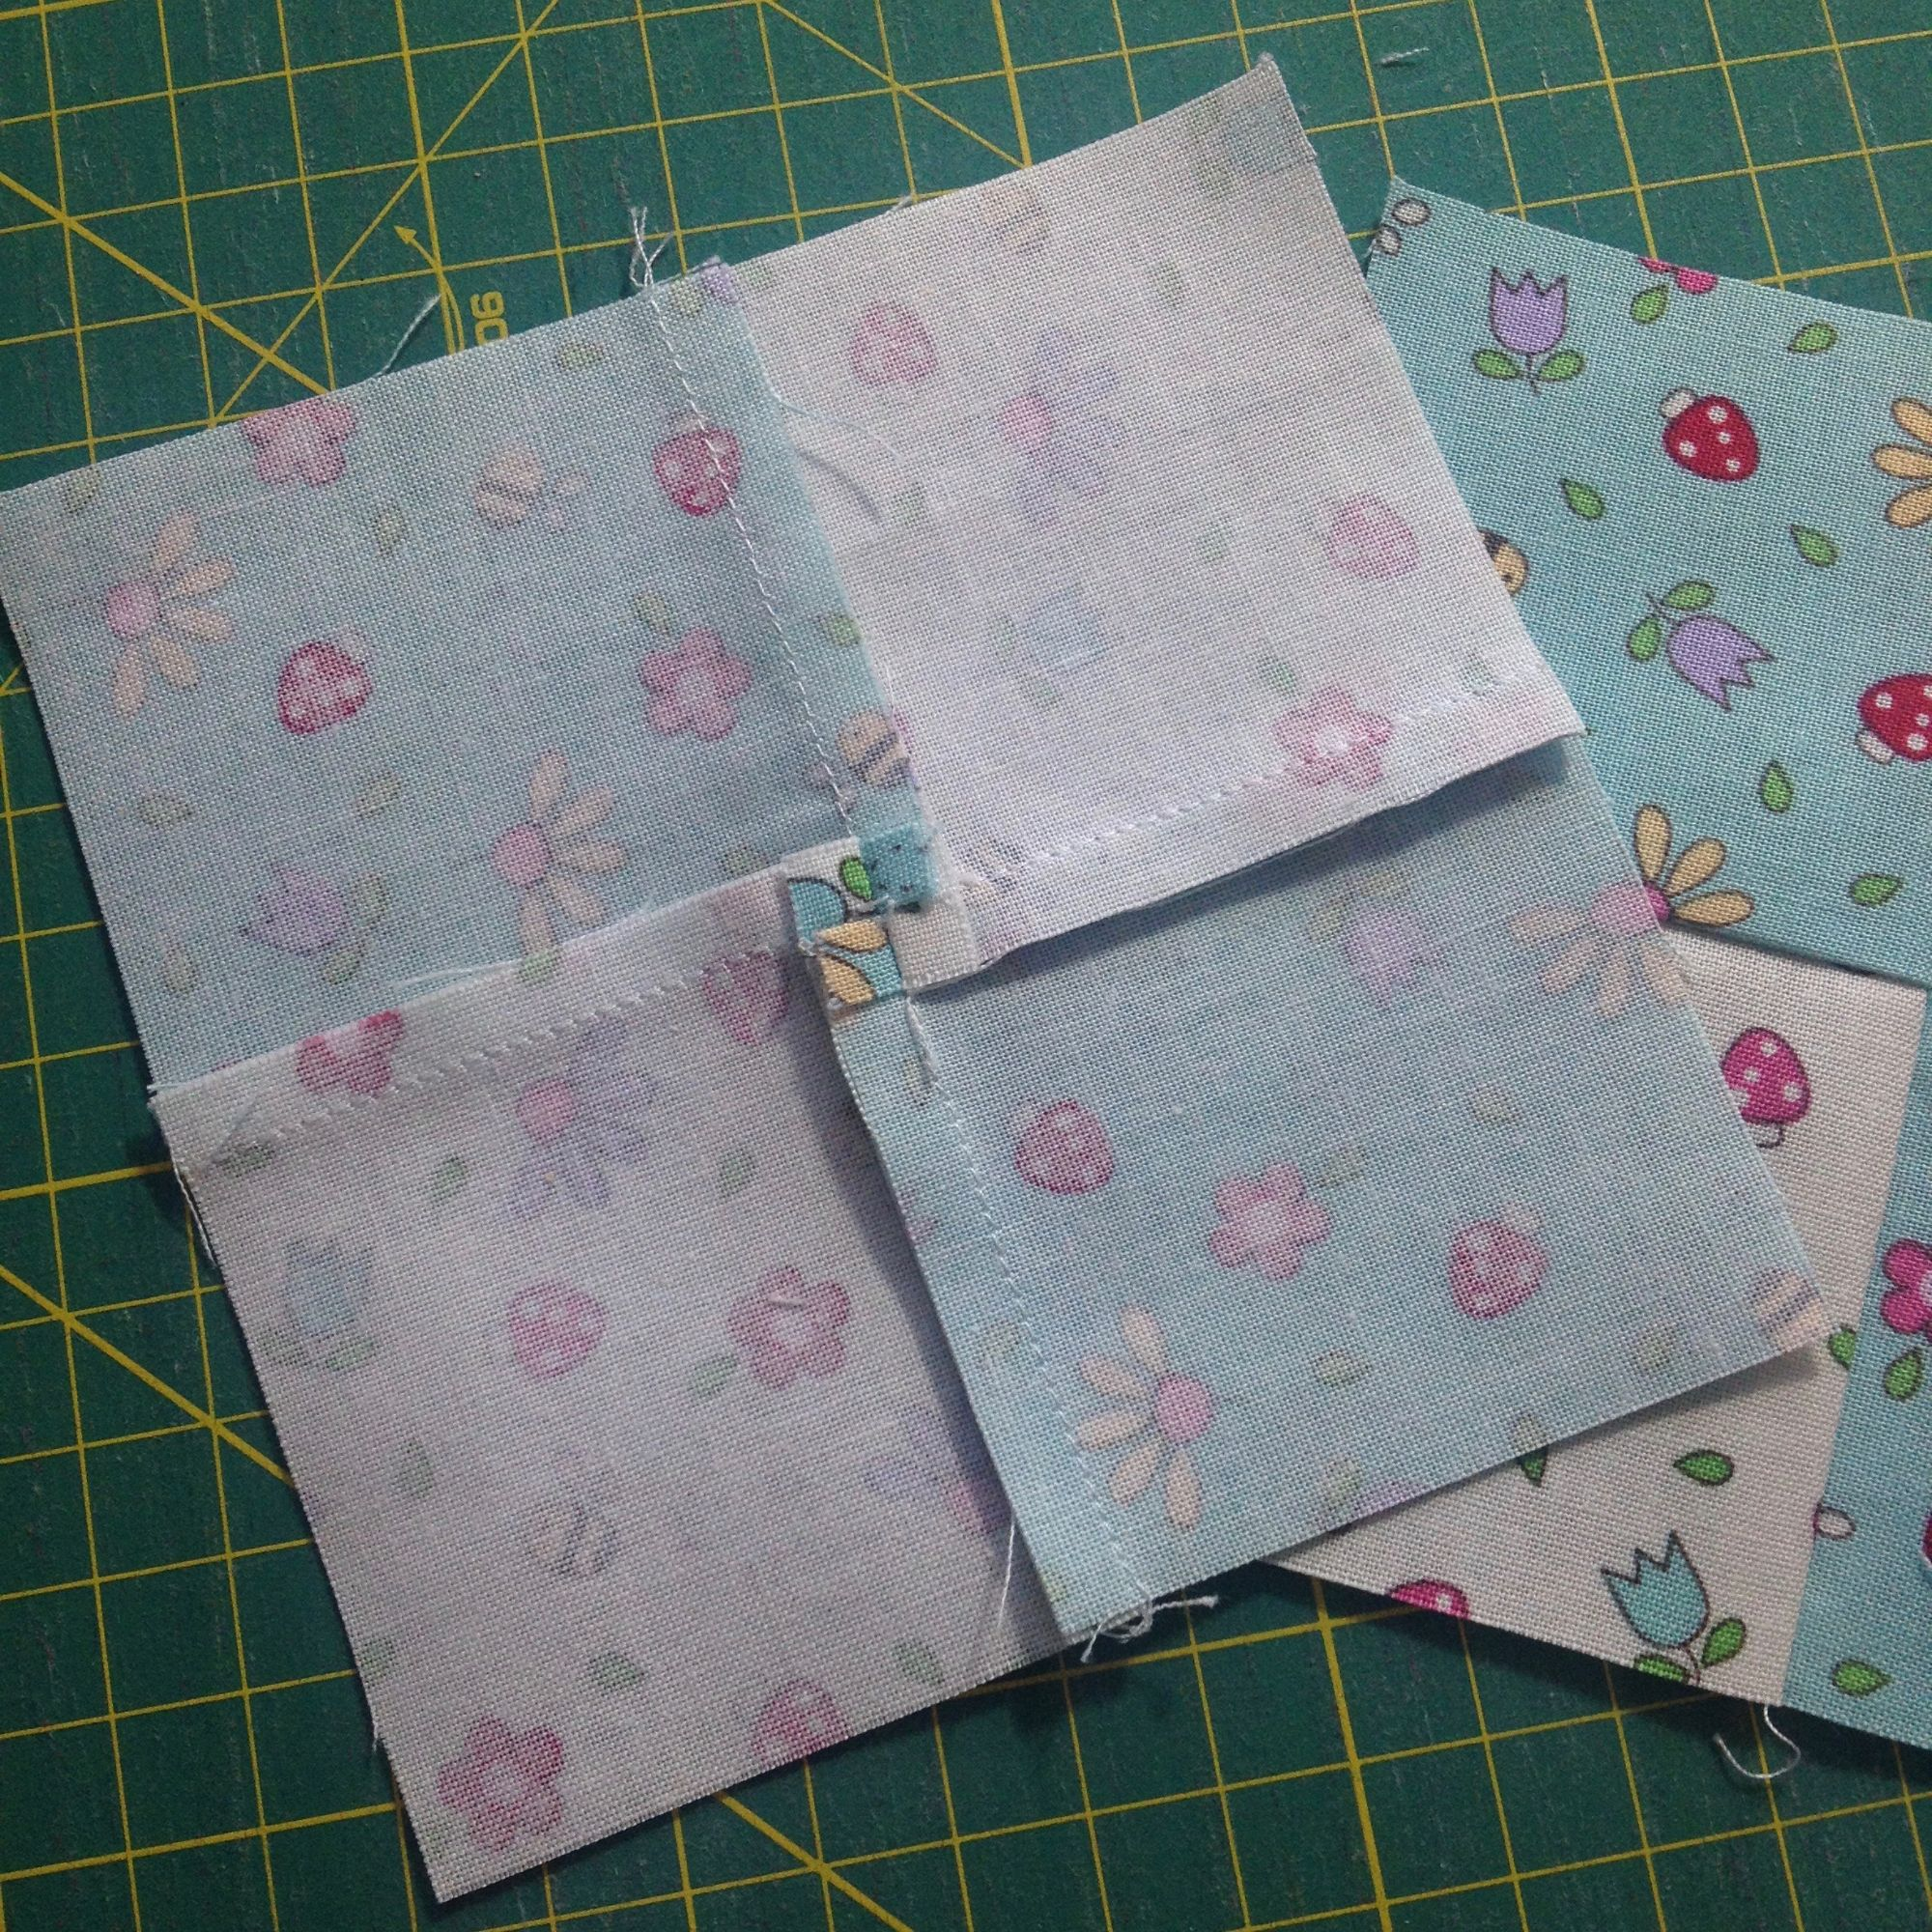 Complete four-patch with charm squares